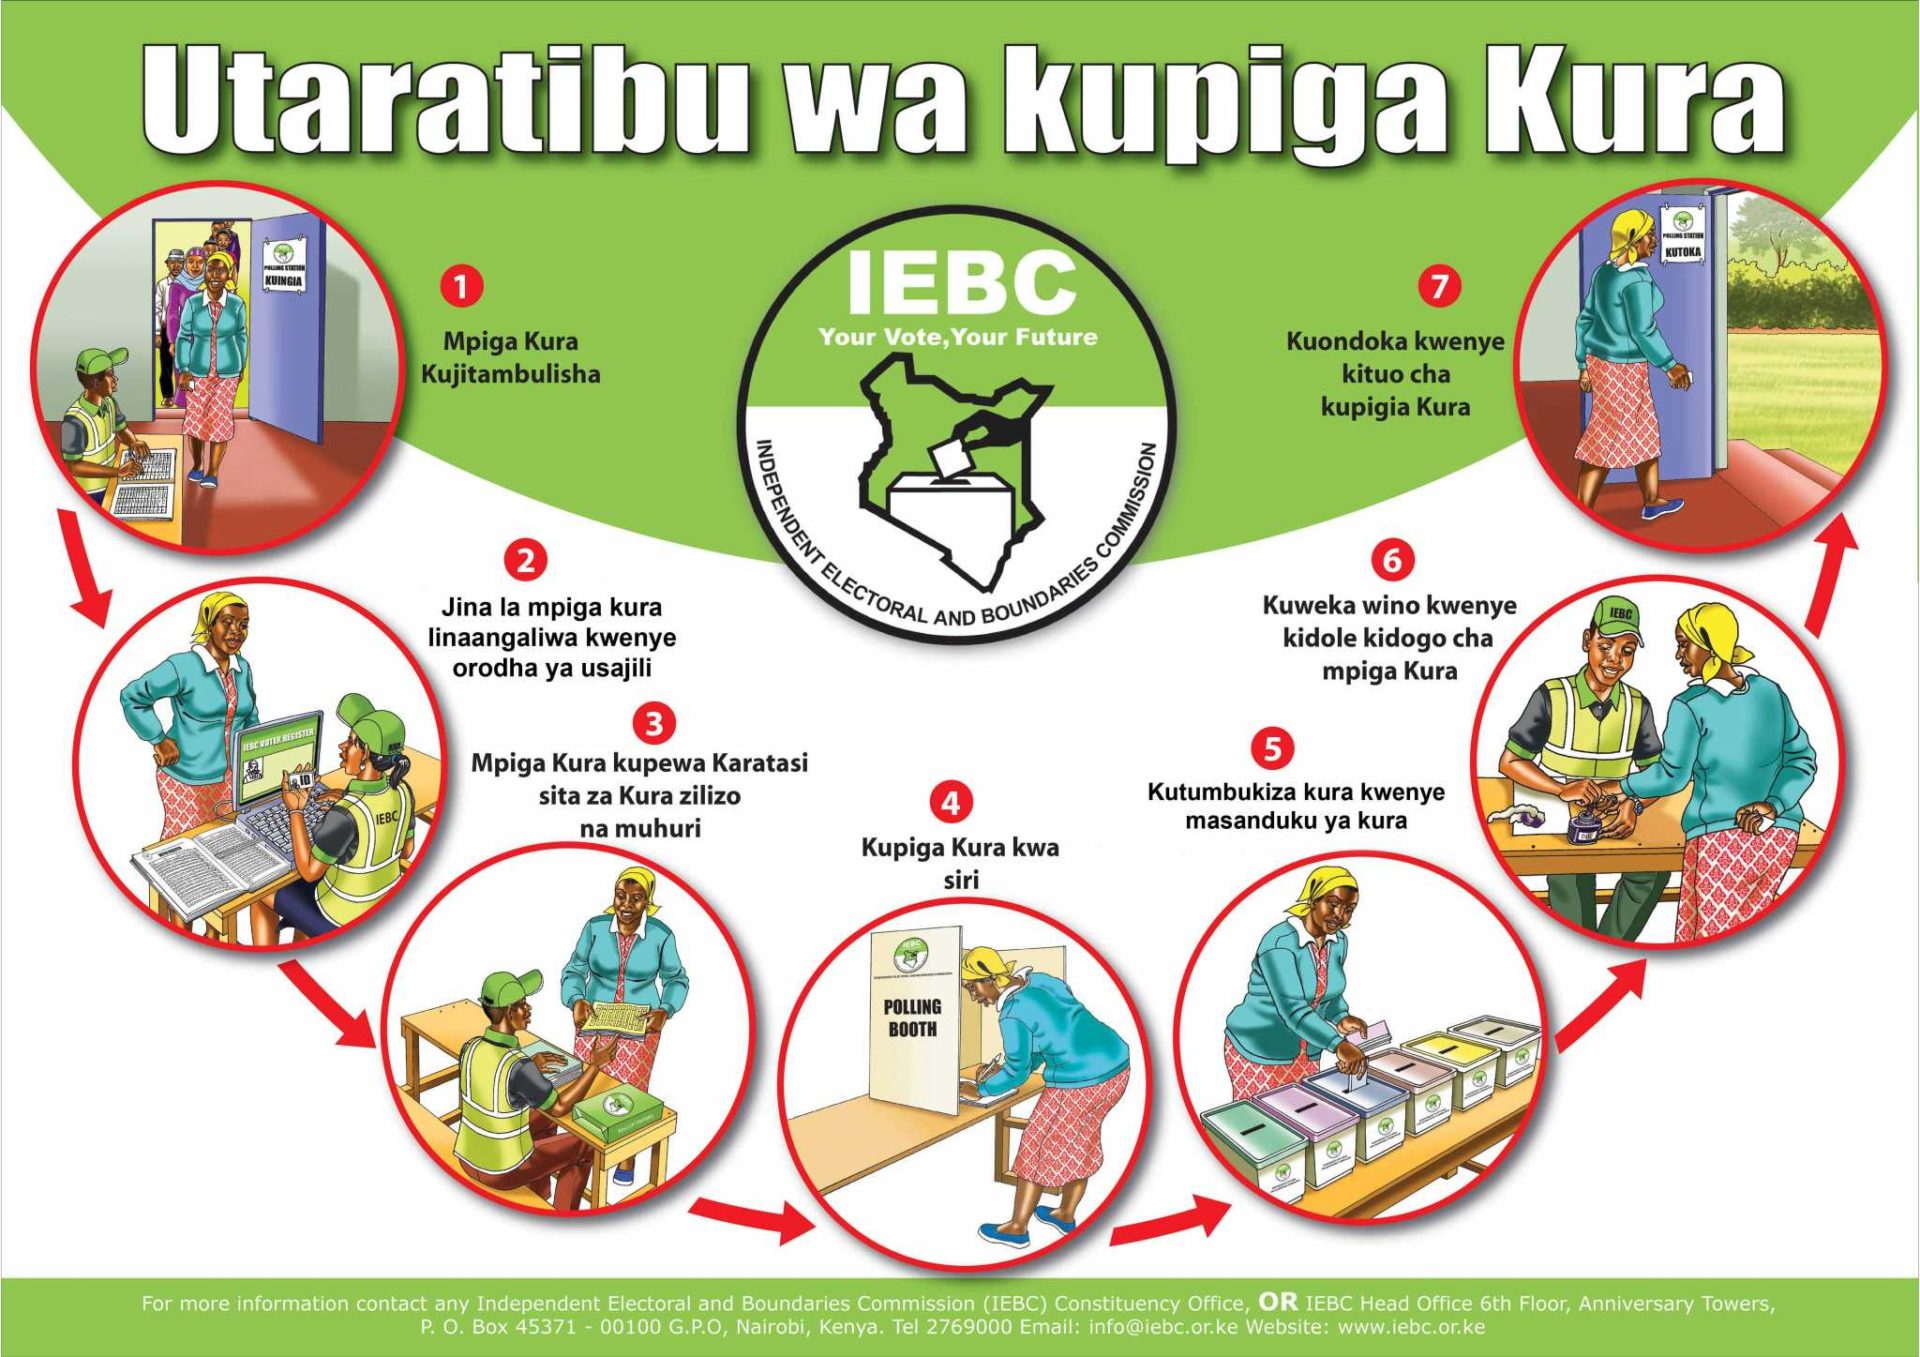 Source IEBC Website